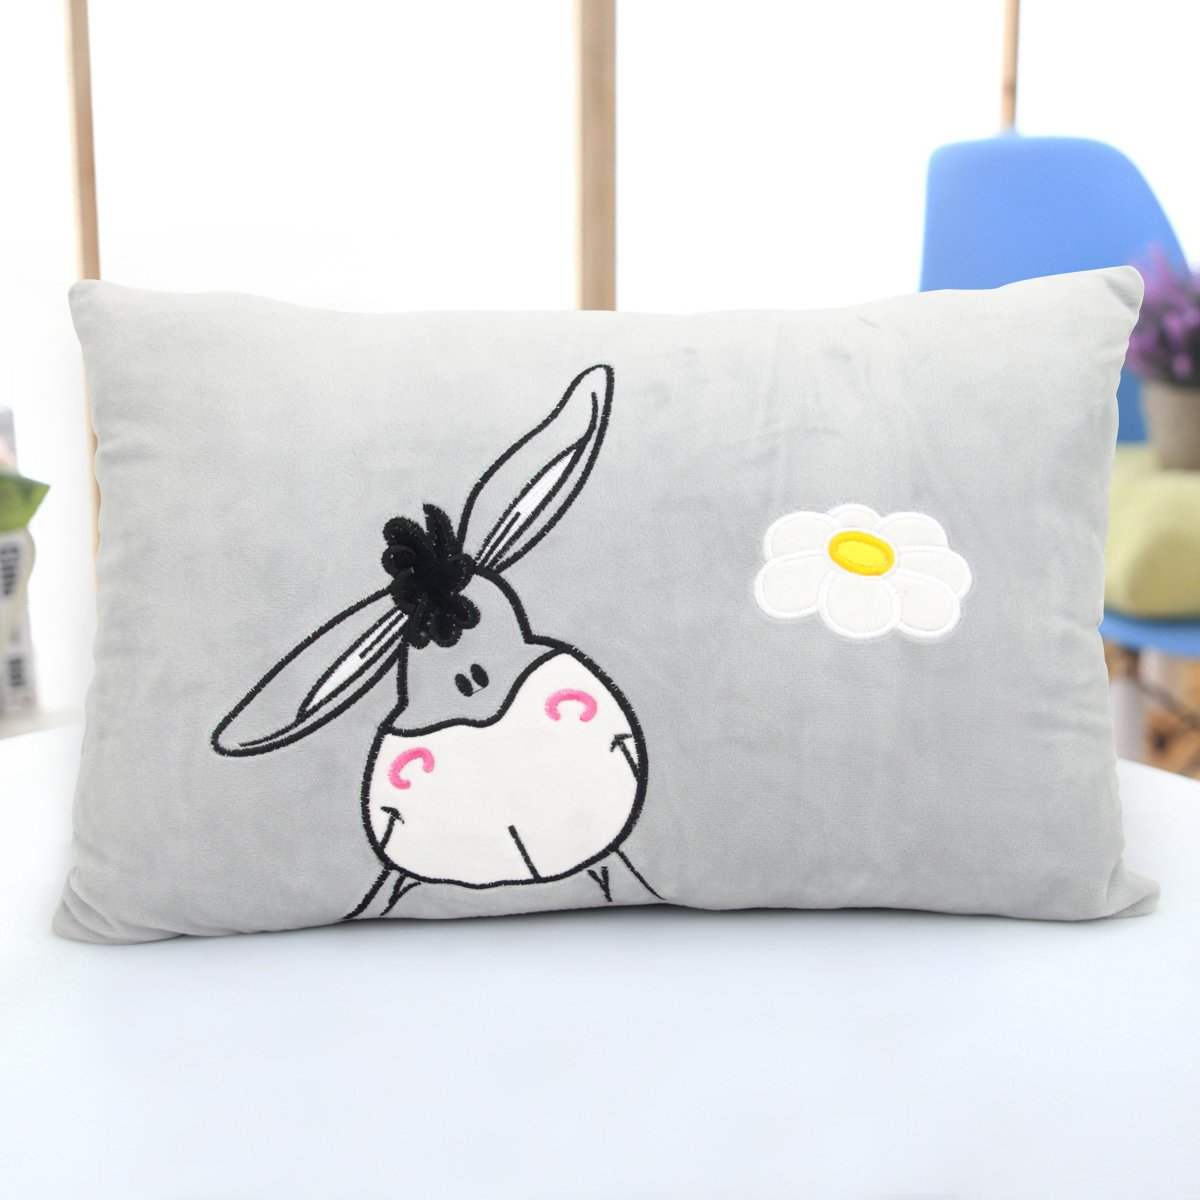 Music Speaker Pillow, AUSPA Music Pillow with Build-in Stereo Speaker & Cord, Music MP3 Player Pillow (Donkey Pattern)